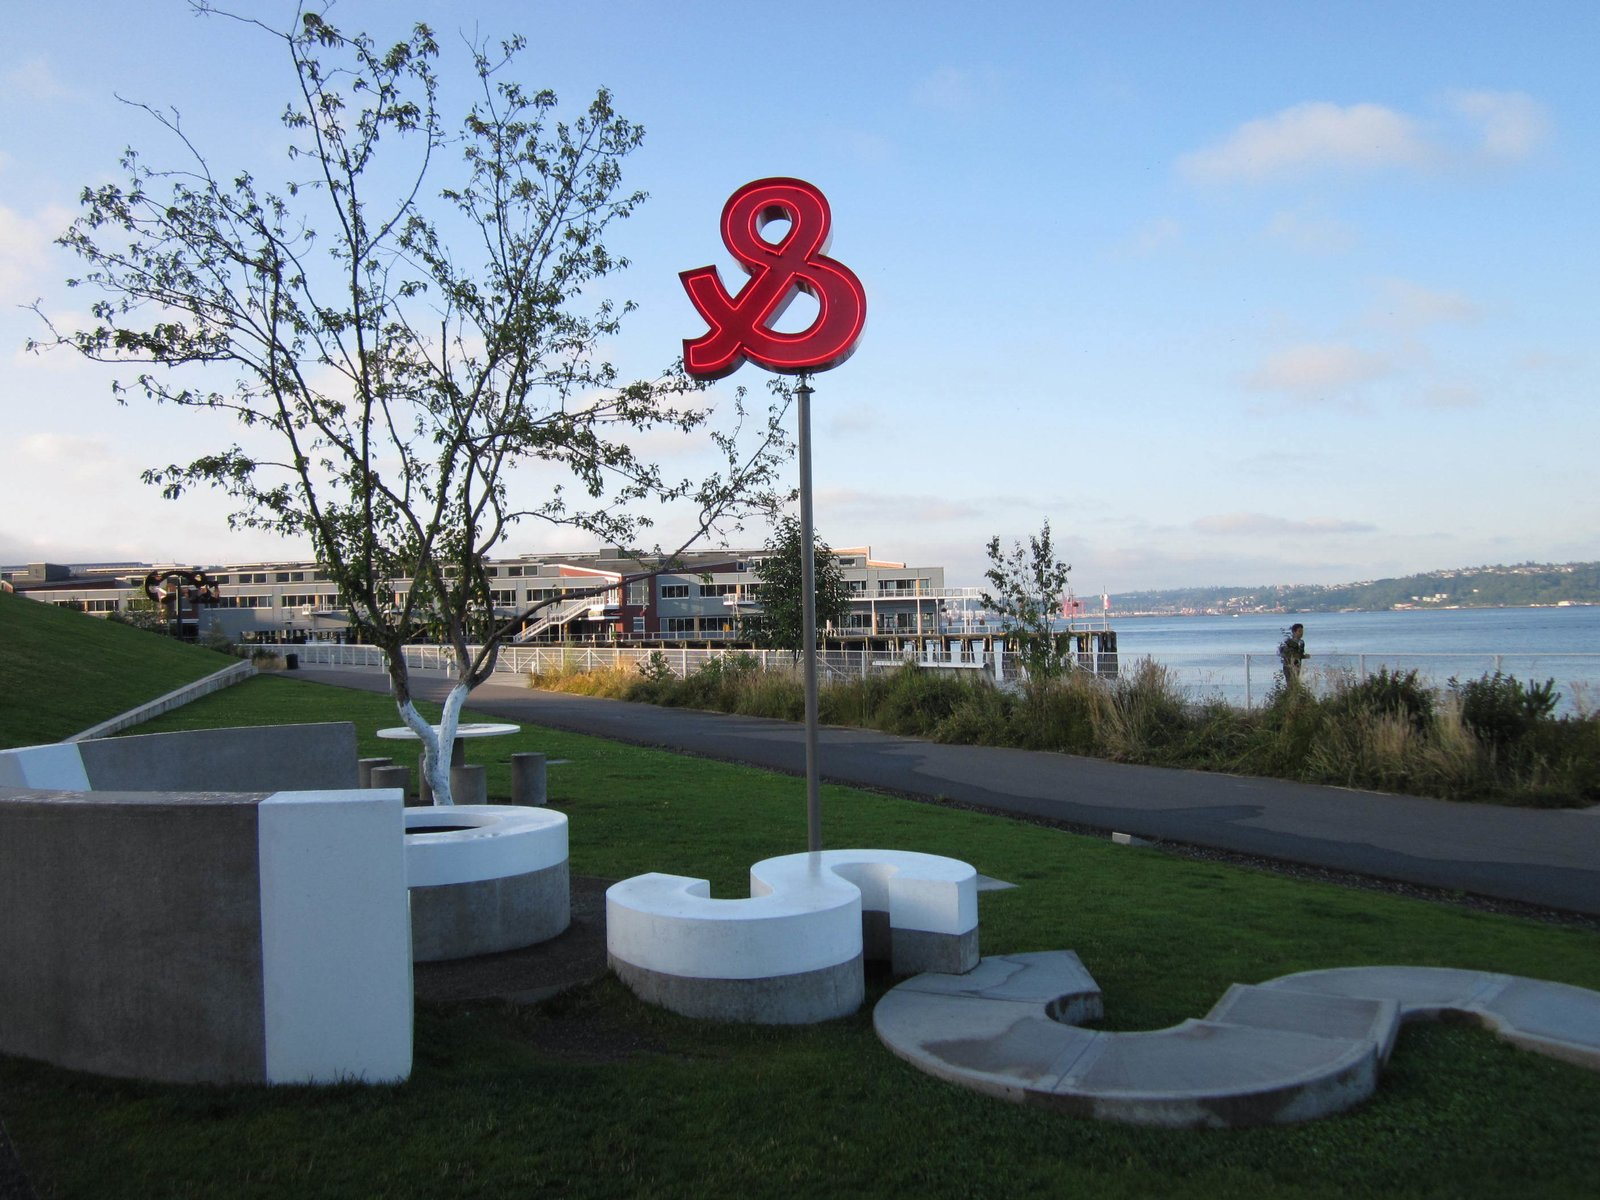 Olympic Sculpture Park in Seattle, WA  Photo 1 of 8 in Top 8 Outdoor Sculpture Parks Perfect For a Summer Outing